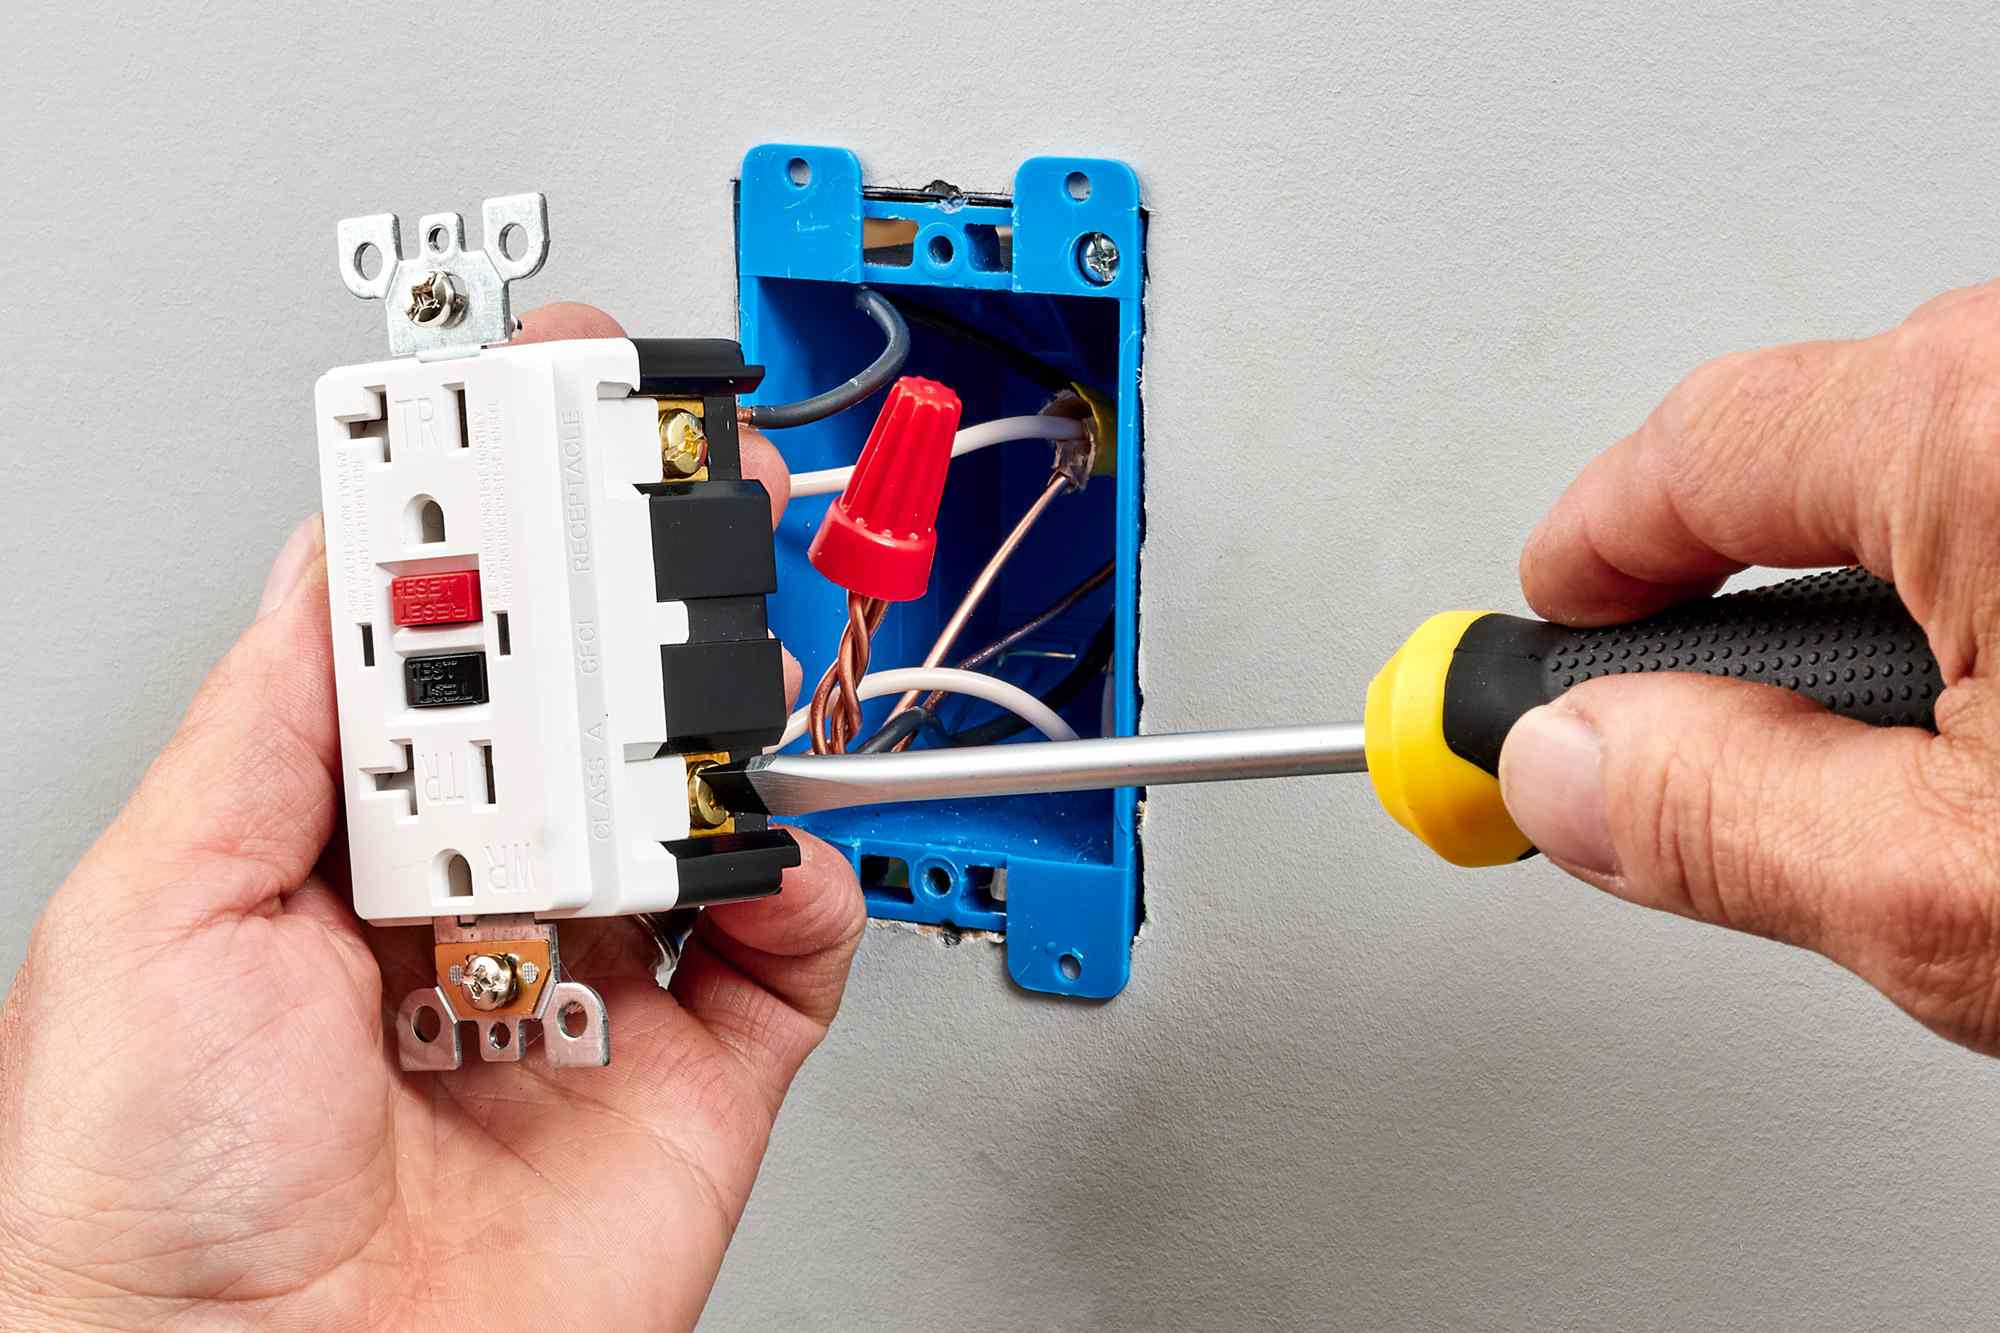 GFCI receptacle replacing a standard outlet with screwdriver